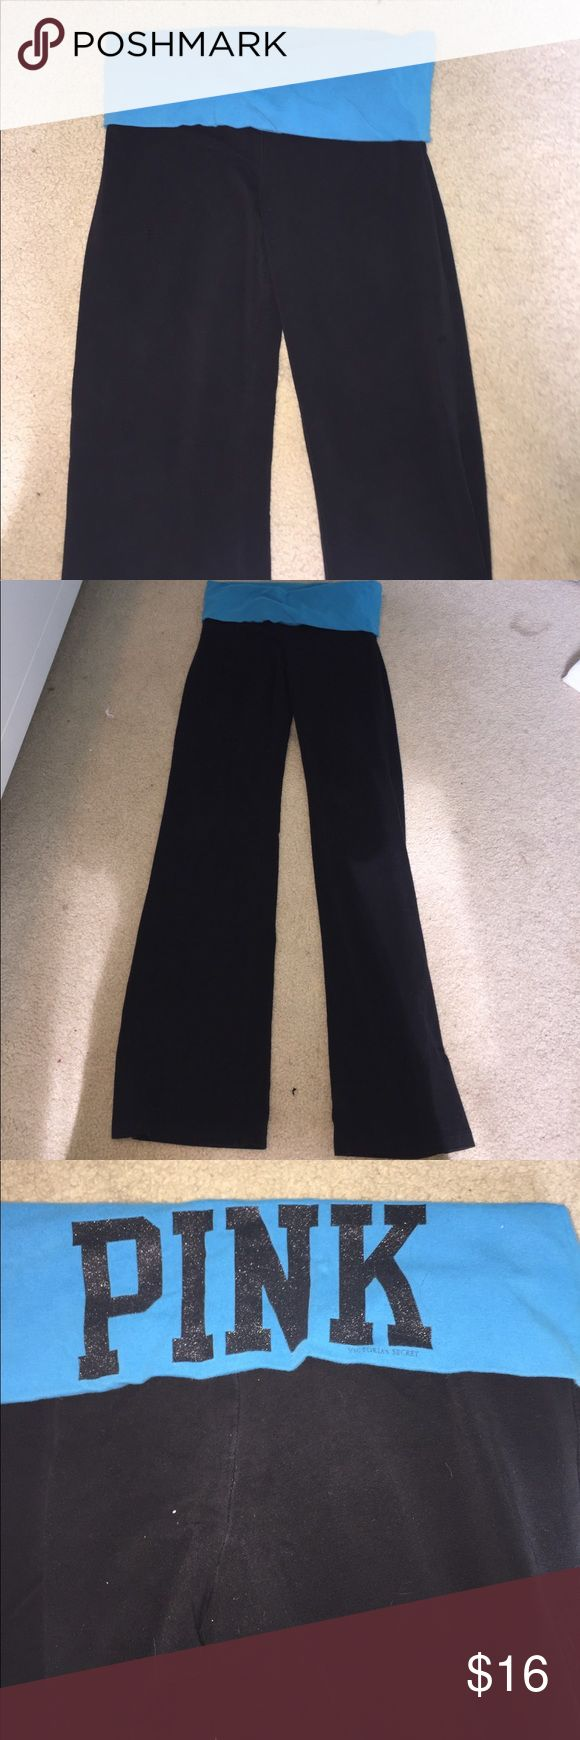 Victoria secret pink yoga pants Victoria secret pink yoga pants. Size small lots of wear left to them. Make an offer need to sell :) PINK Victoria's Secret Pants